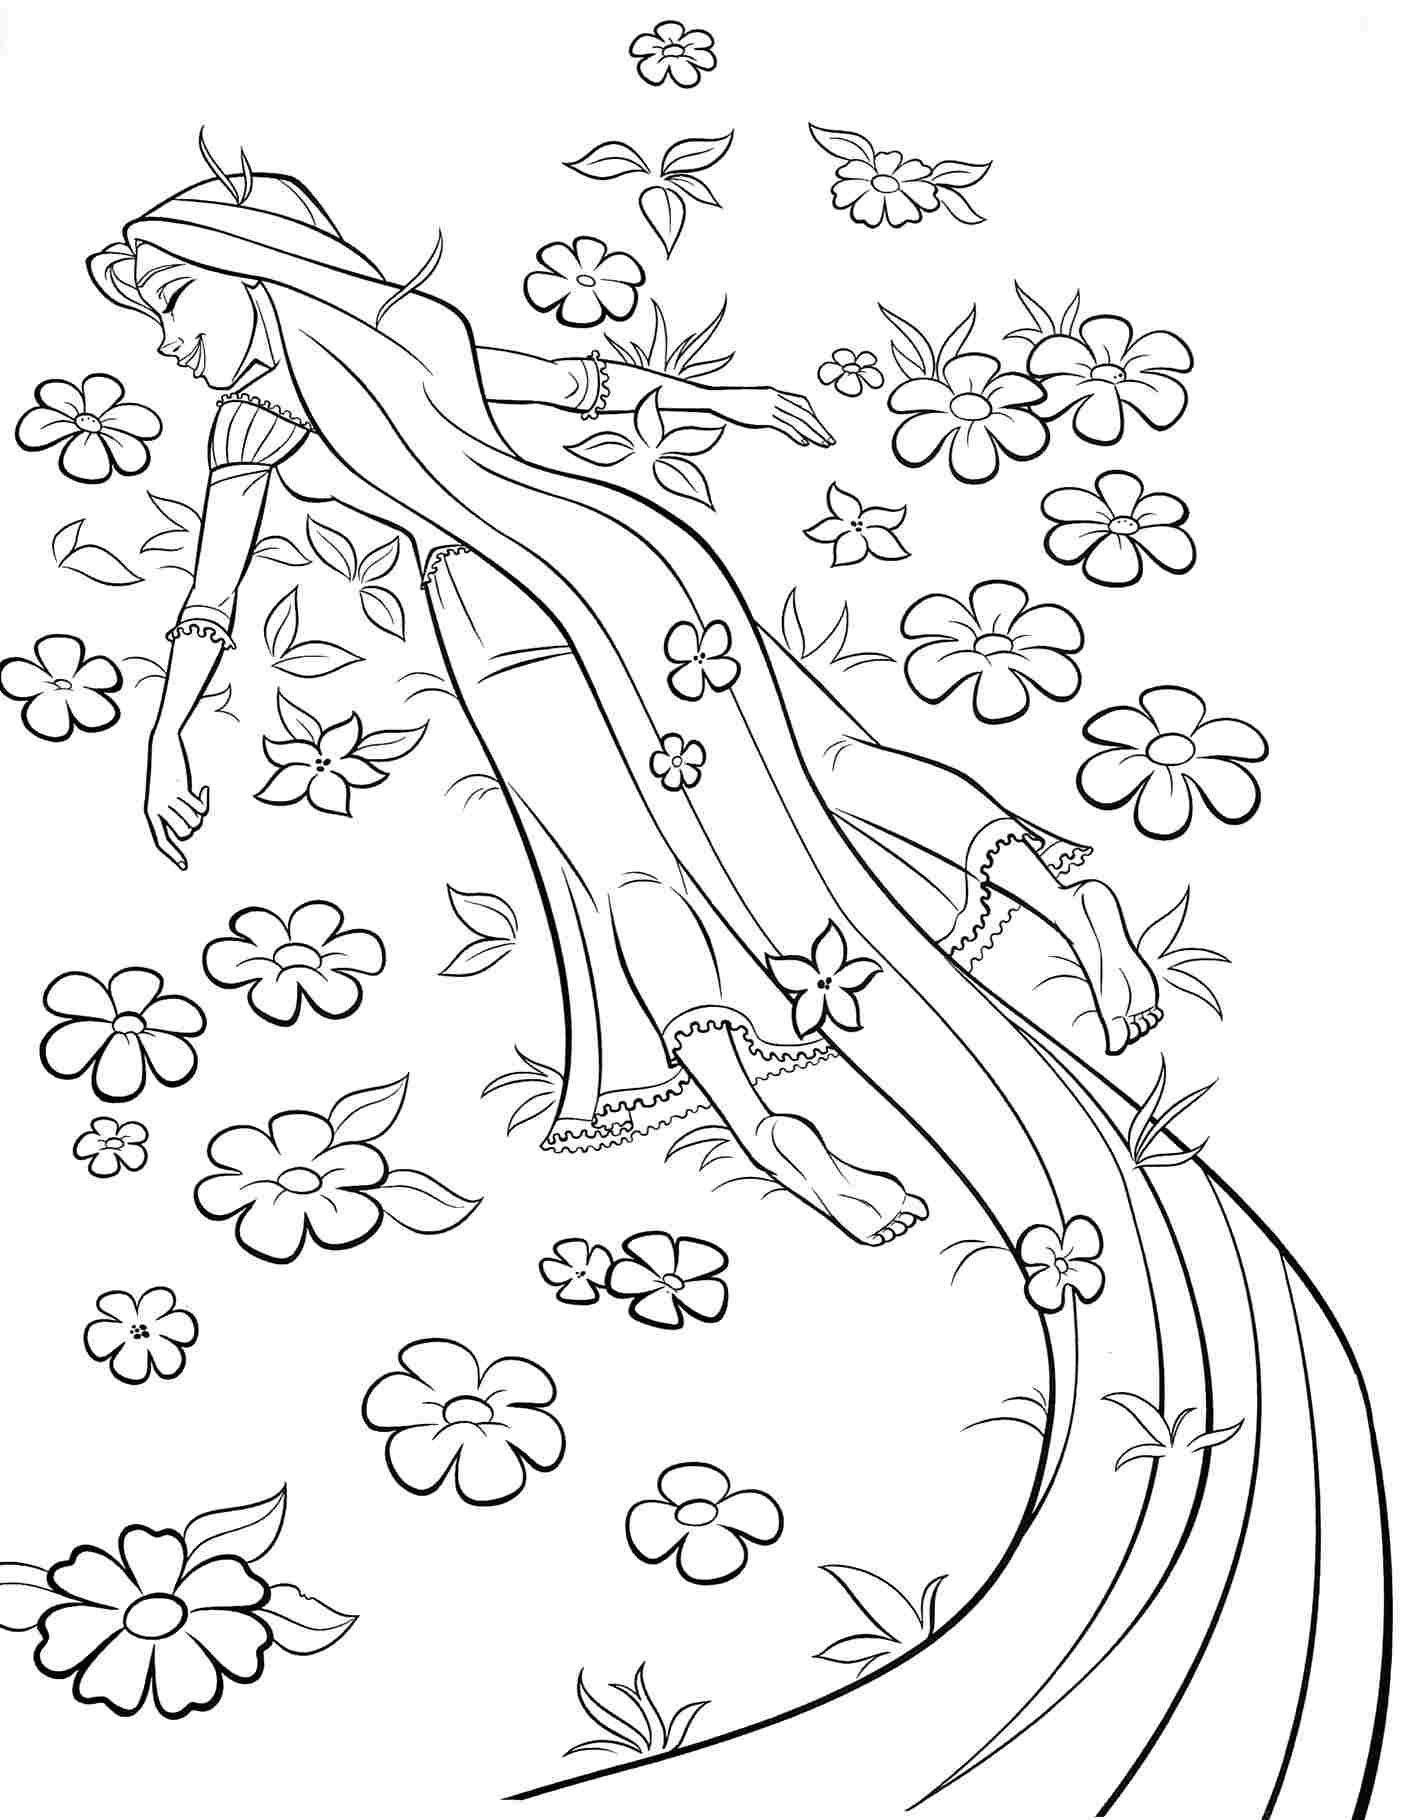 Märchen Ausmalbilder Rapunzel : Disney Tangled Coloring Pages Printable Disney Princess Rapunzel